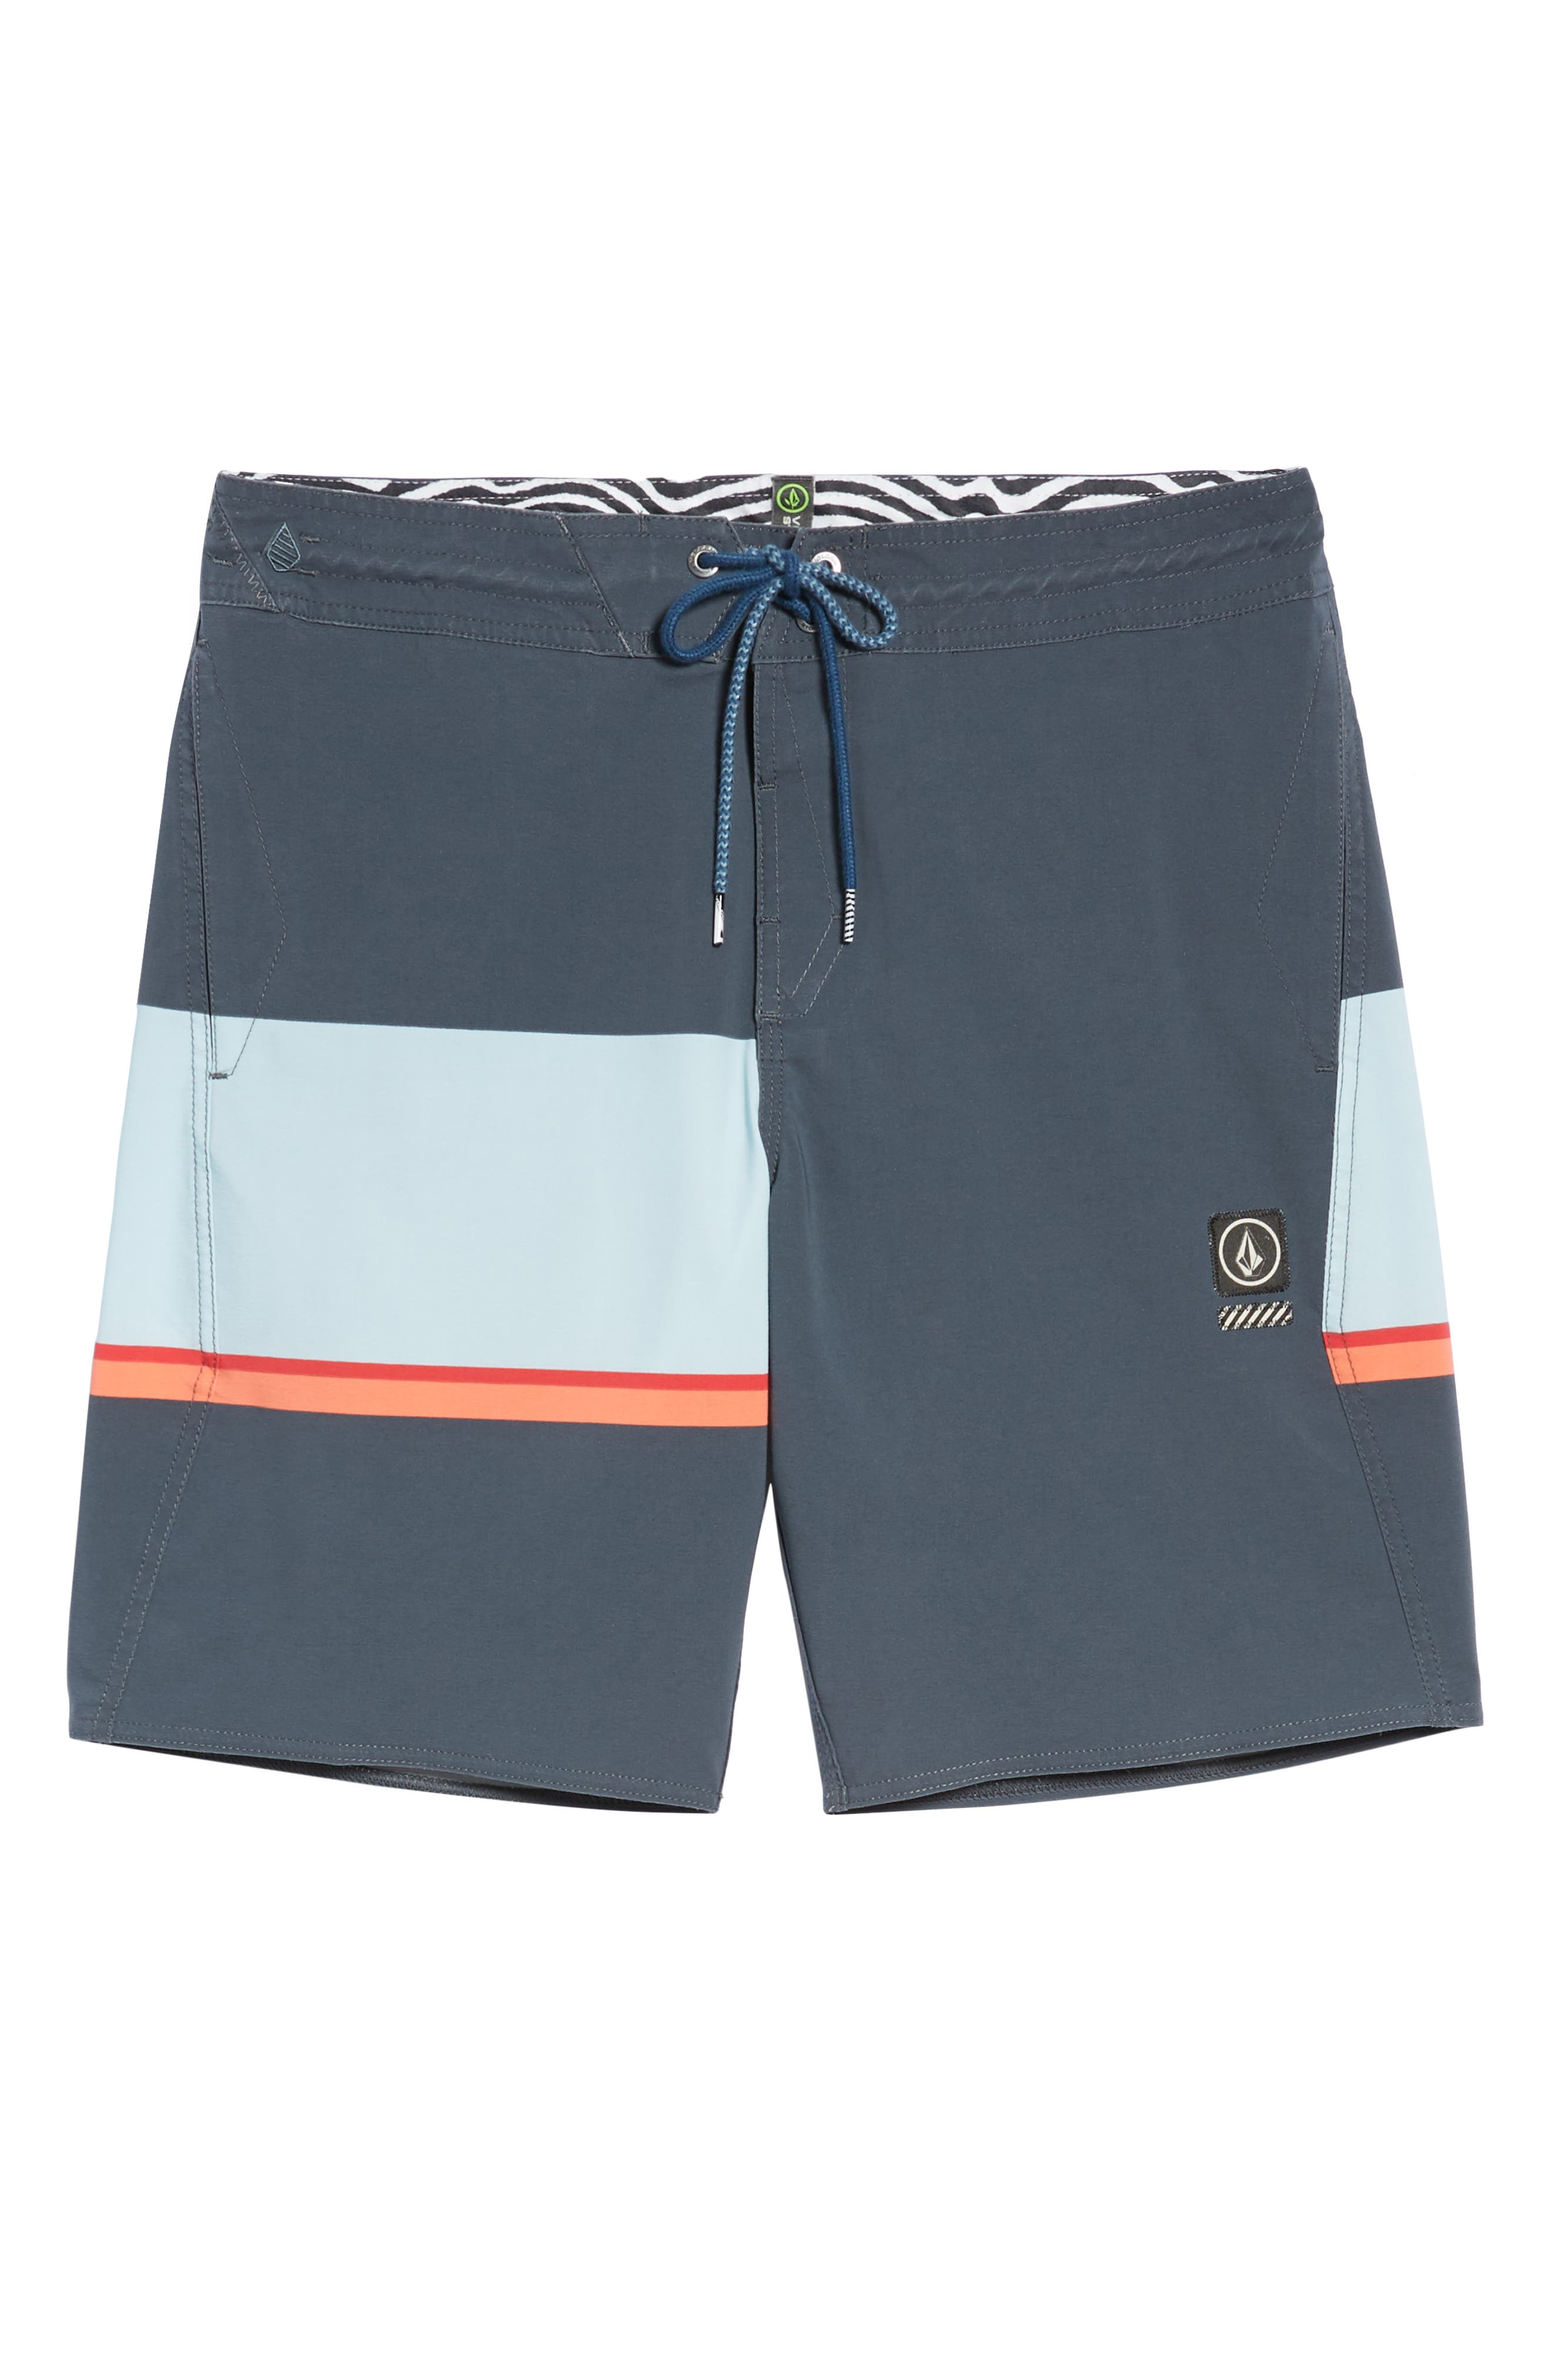 3 Quarta Stoney Board Shorts,                             Alternate thumbnail 6, color,                             MEDIUM BLUE